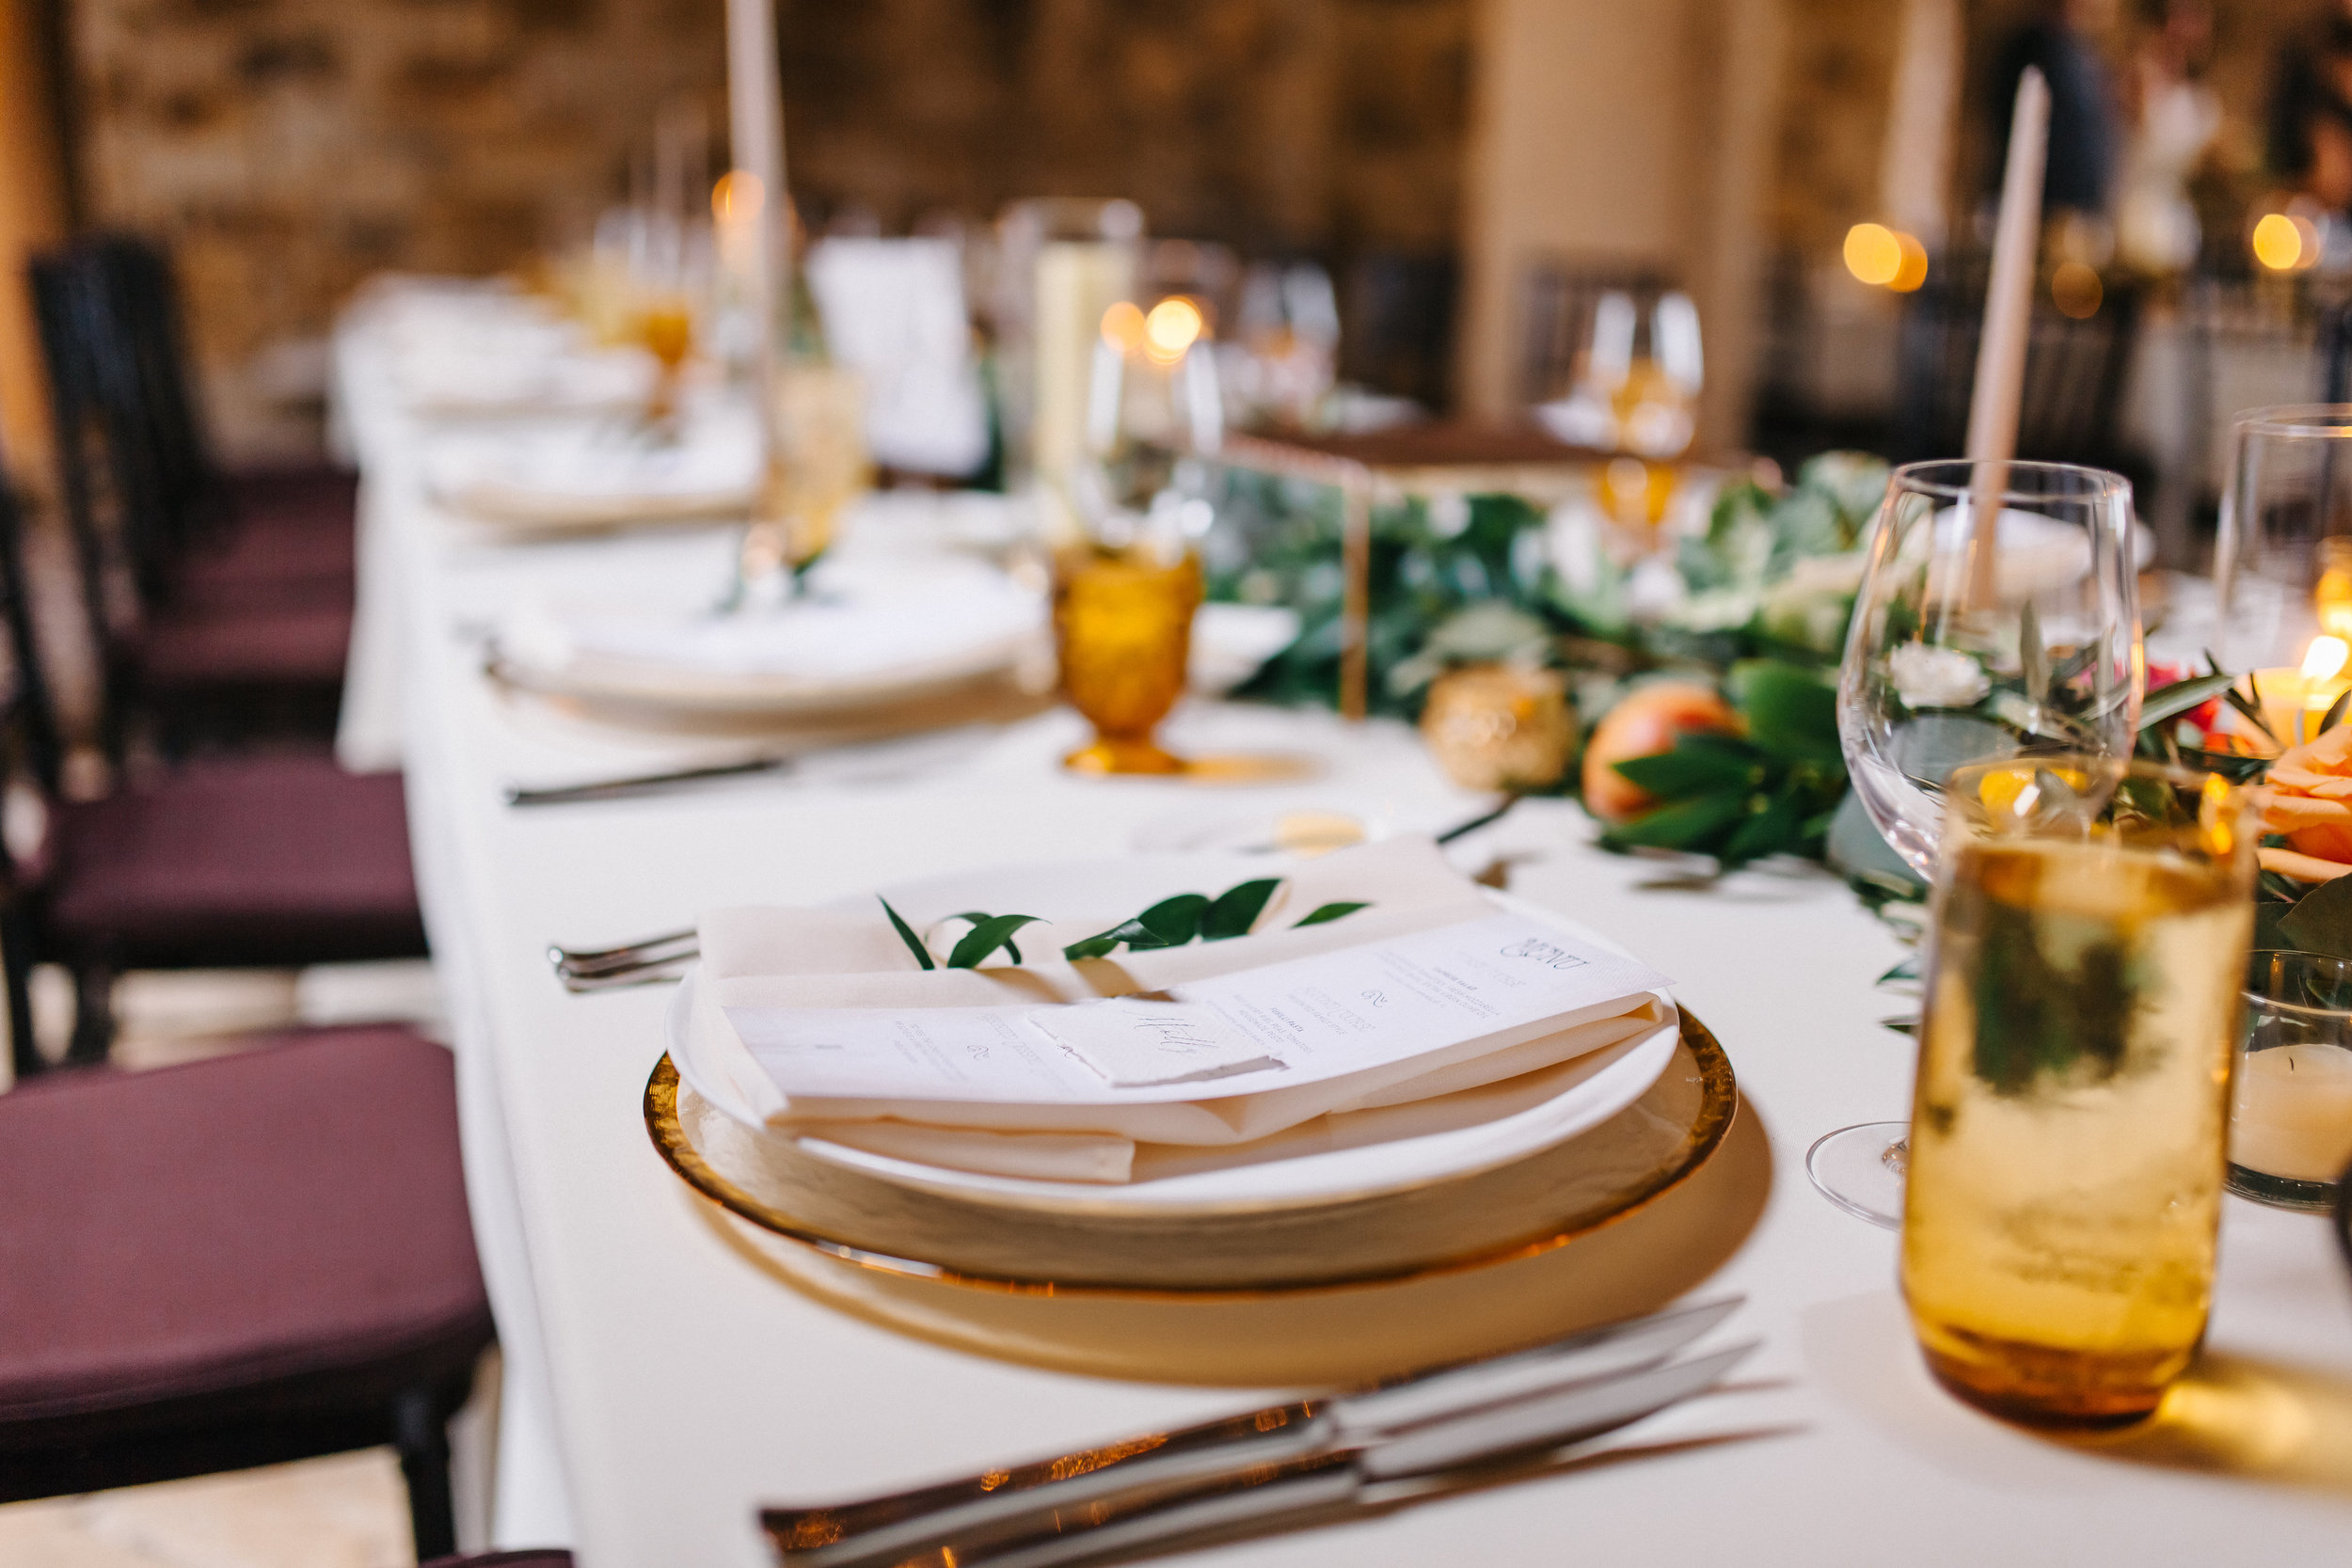 Candlelit tuscan inspired wedding reception with olive leaf and magnolia greenery and colored glassware  Orlando Wedding Planner Blue Ribbon Weddings  Orlando Wedding Photographer Emma Shourds Photography  Wedding Ceremony at Bell Tower at Bella Collina  Wedding Reception in Atrium at Bella Collina